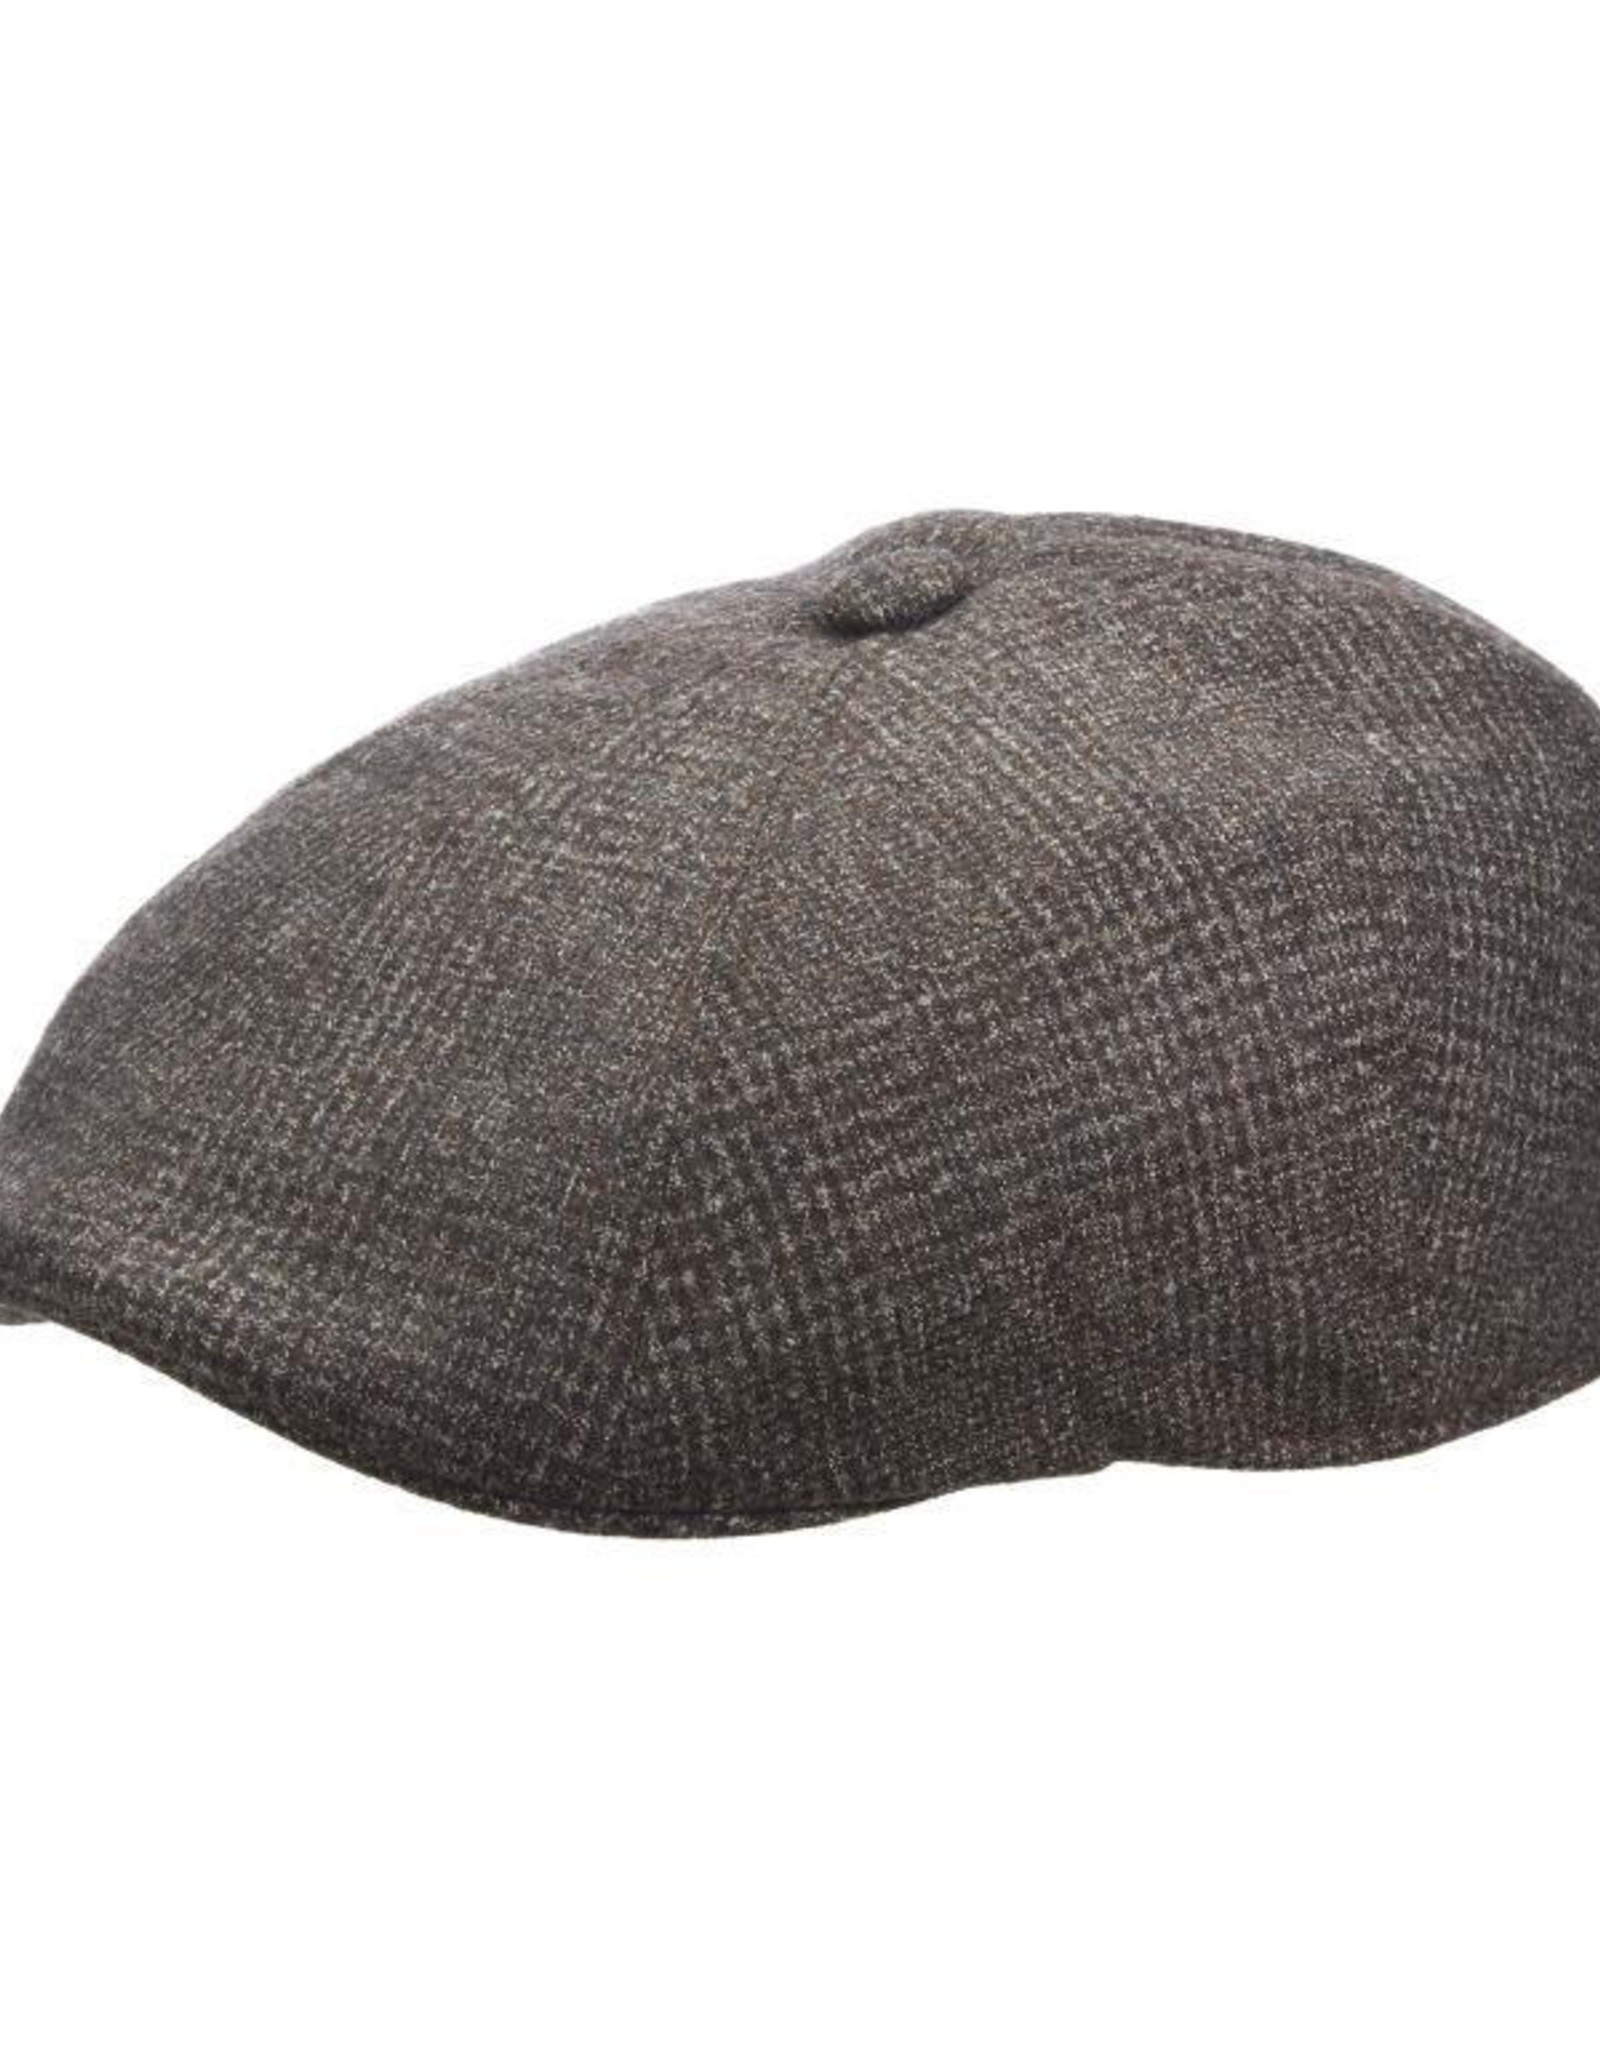 Hat Stetson  RUMFORD Newsboy Plaid Wool Gray